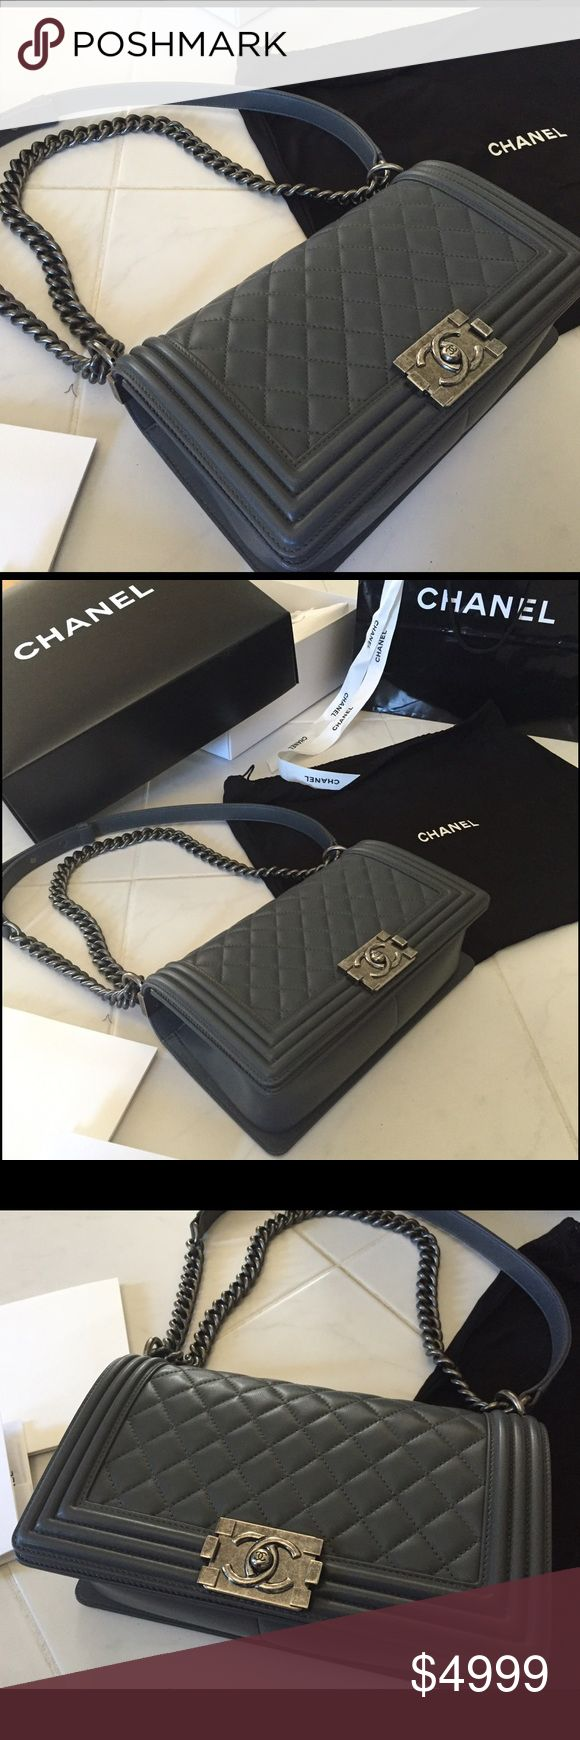 Chanel Boy Bag in grey Chanel boy bag in gunmetal grey, never been worn. Purchased at Chanel store in nyc and I changed my mind after the date was up to return. Comes with original RECIEPT dated this year, all Chanel authenticity cards and original packaging by the Chanel store. Shopping bag, dust bag, box, ribbon everything. It's yours! I had a change of heart! CHANEL Bags Crossbody Bags